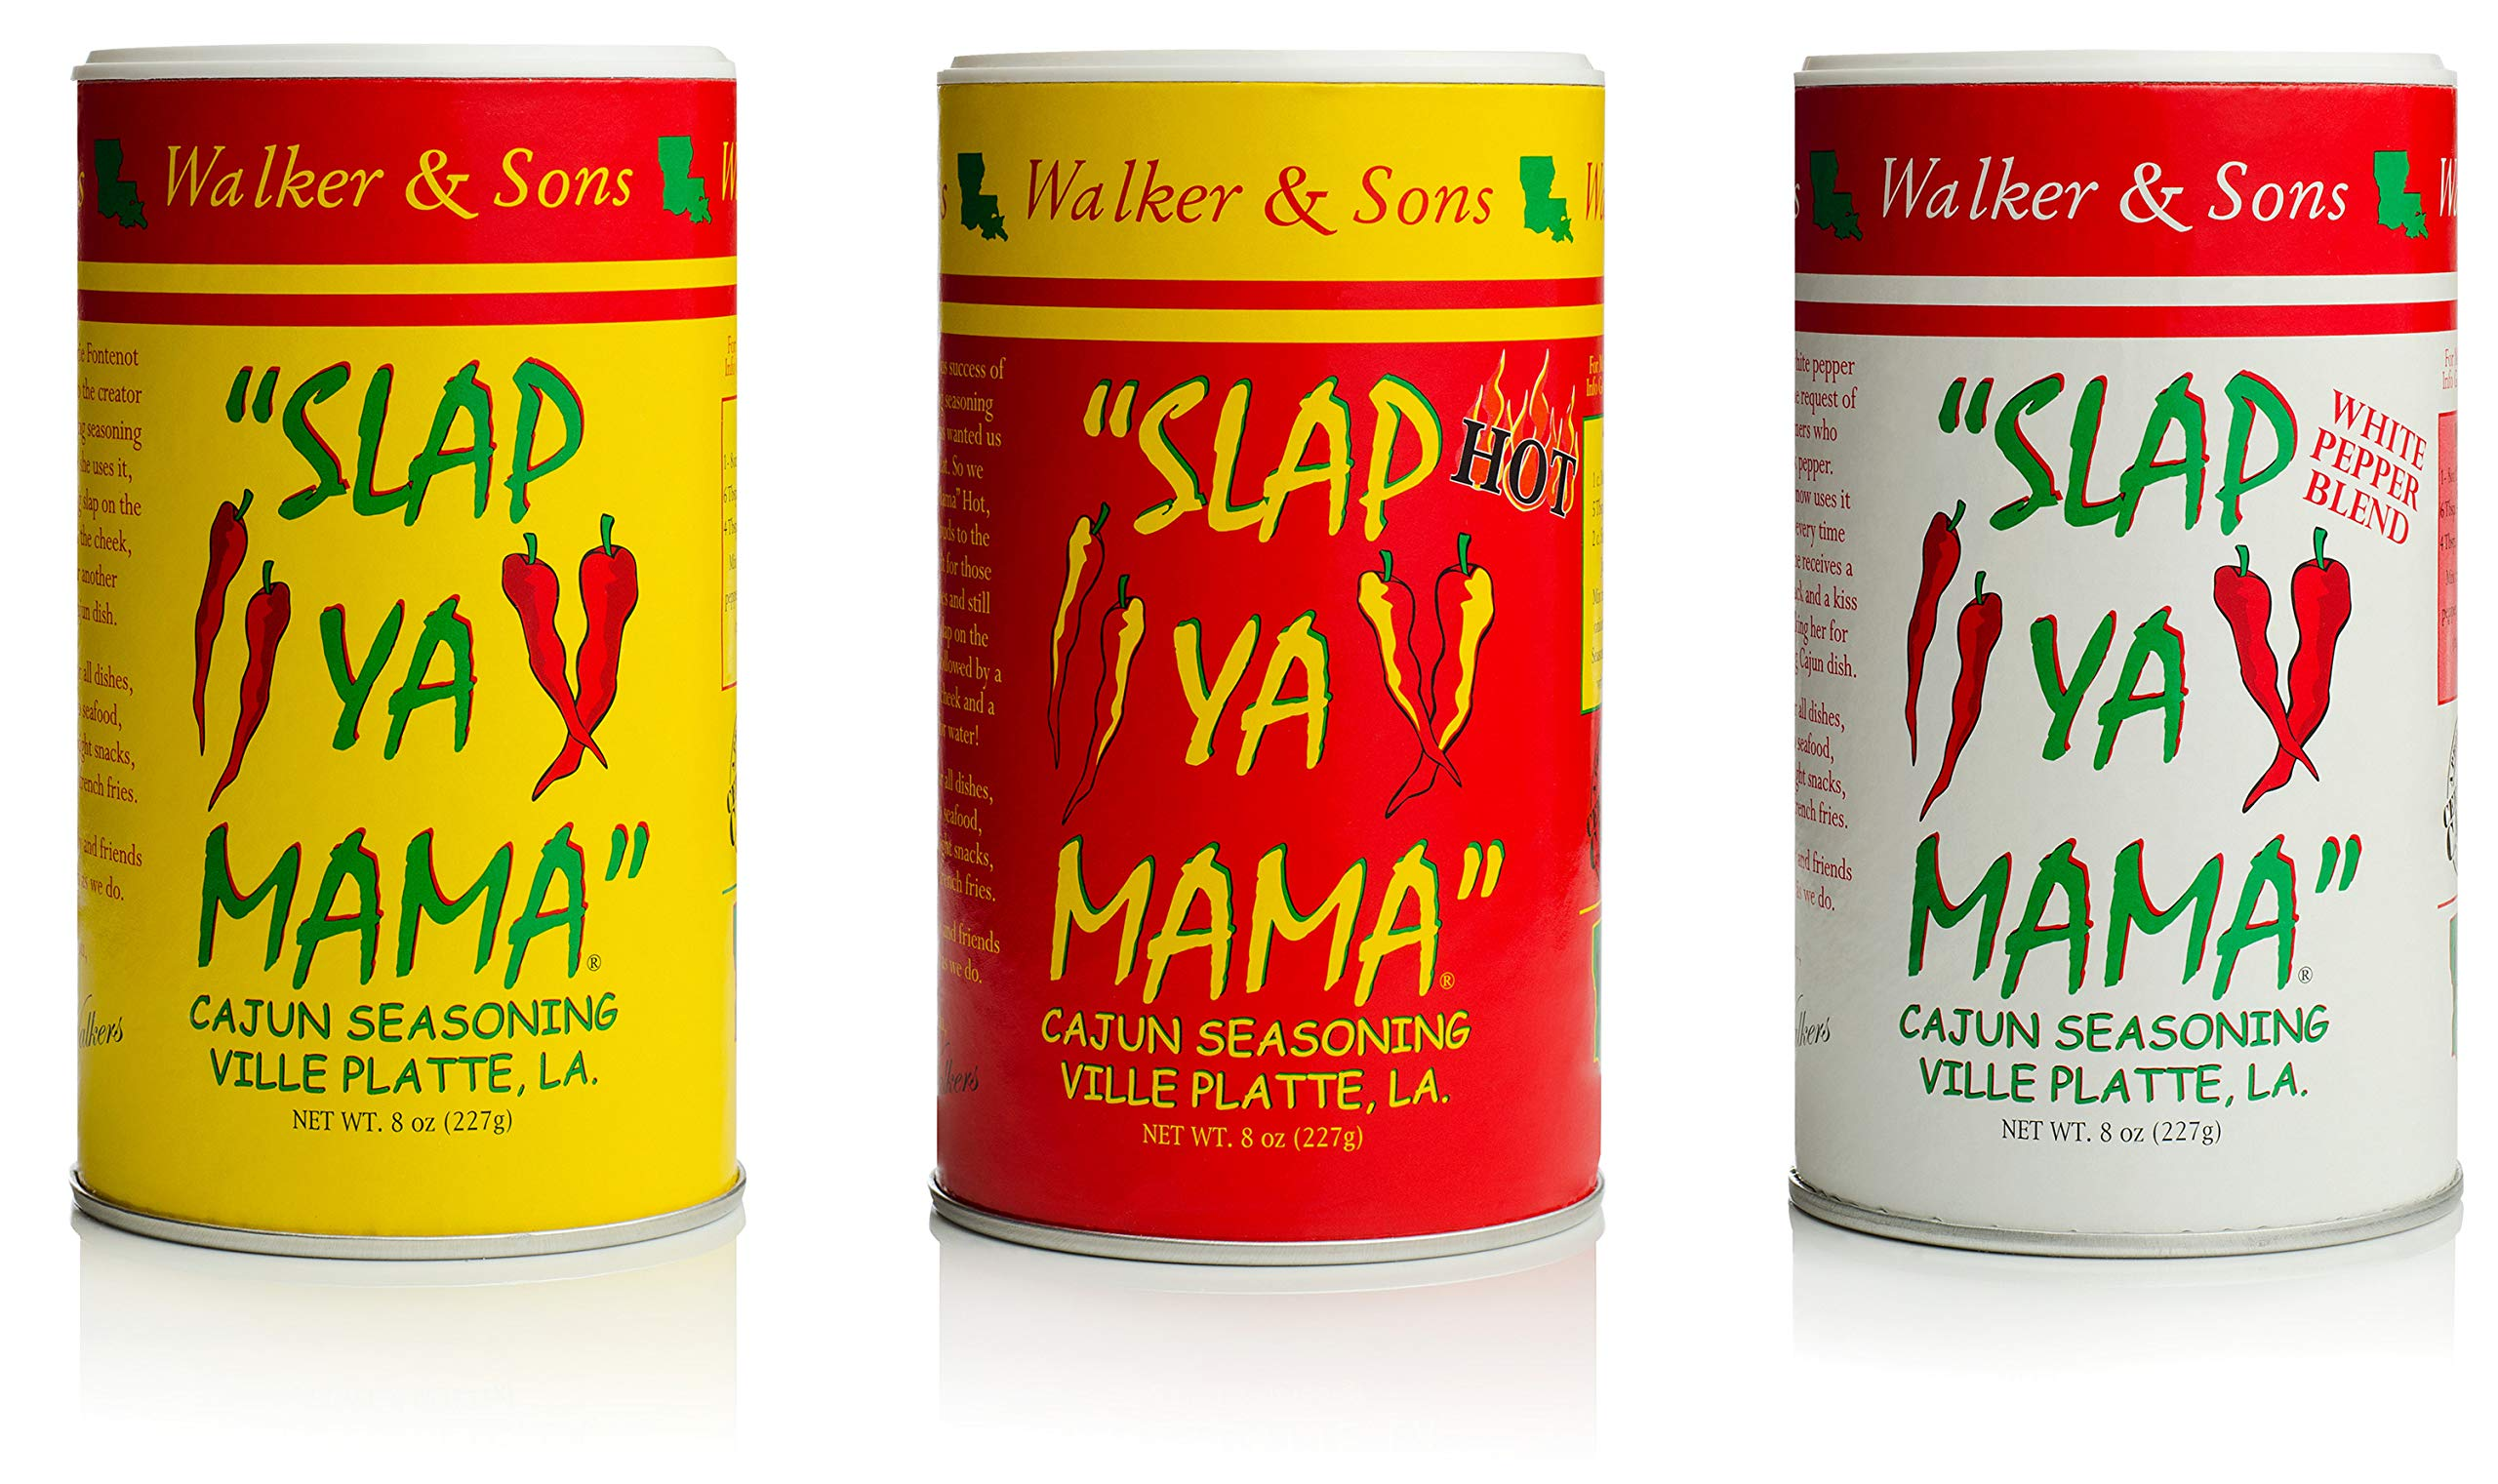 Slap Ya Mama All Natural Cajun Seasoning from Louisiana Spice Variety Pack, 8 Ounce Cans, 1 Cajun, 1 Cajun Hot, 1 White Pepper Blend